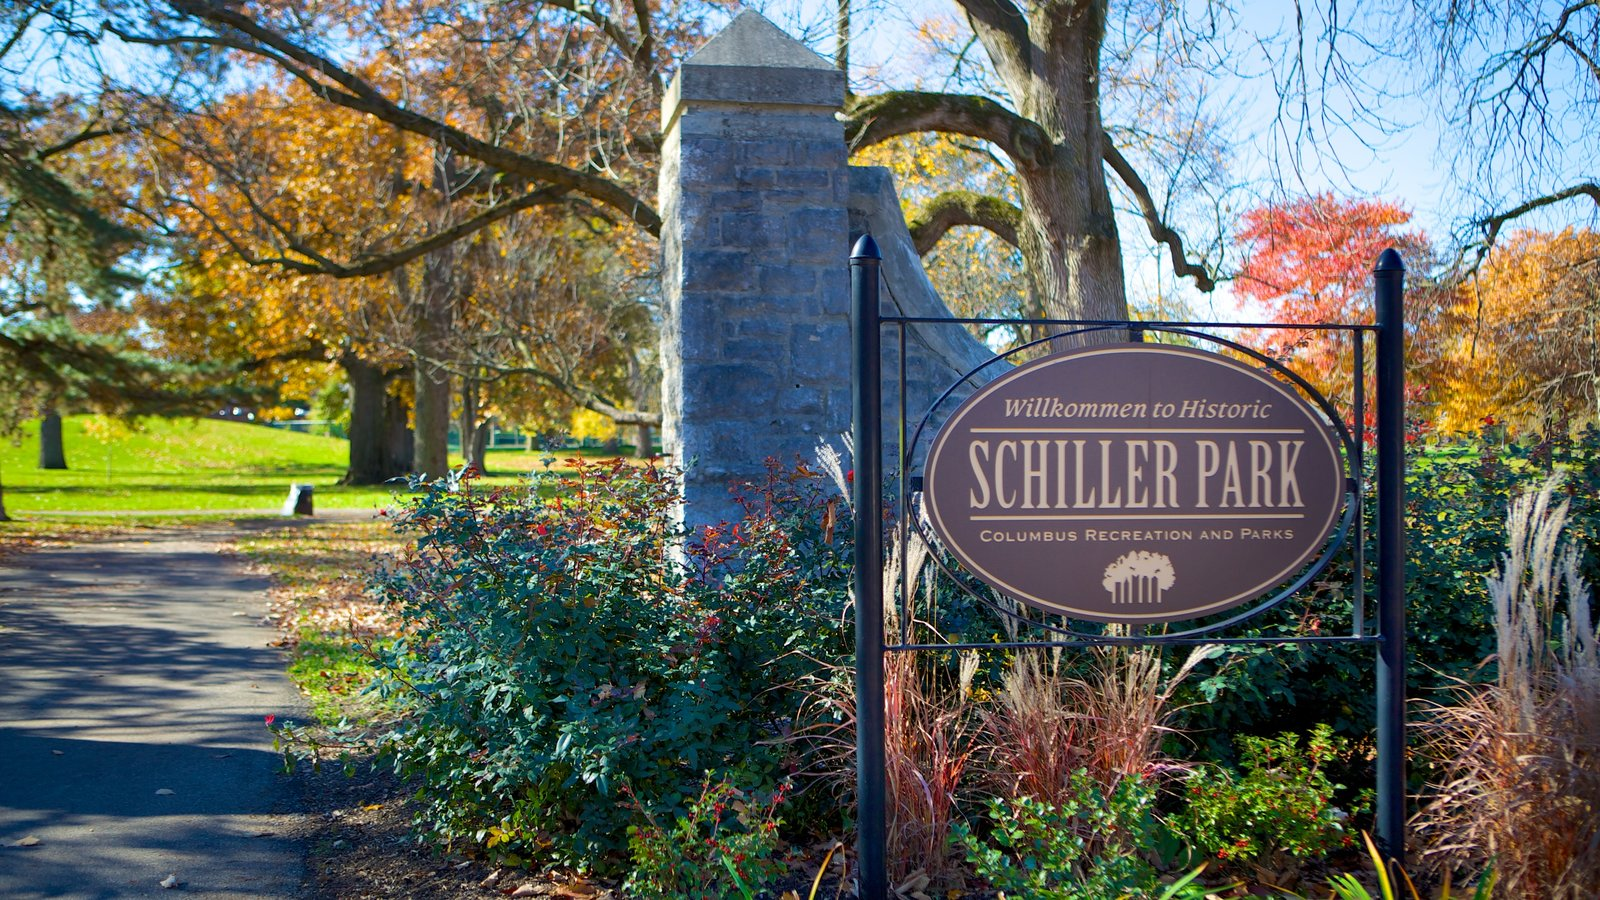 Schiller Park which includes a park and signage